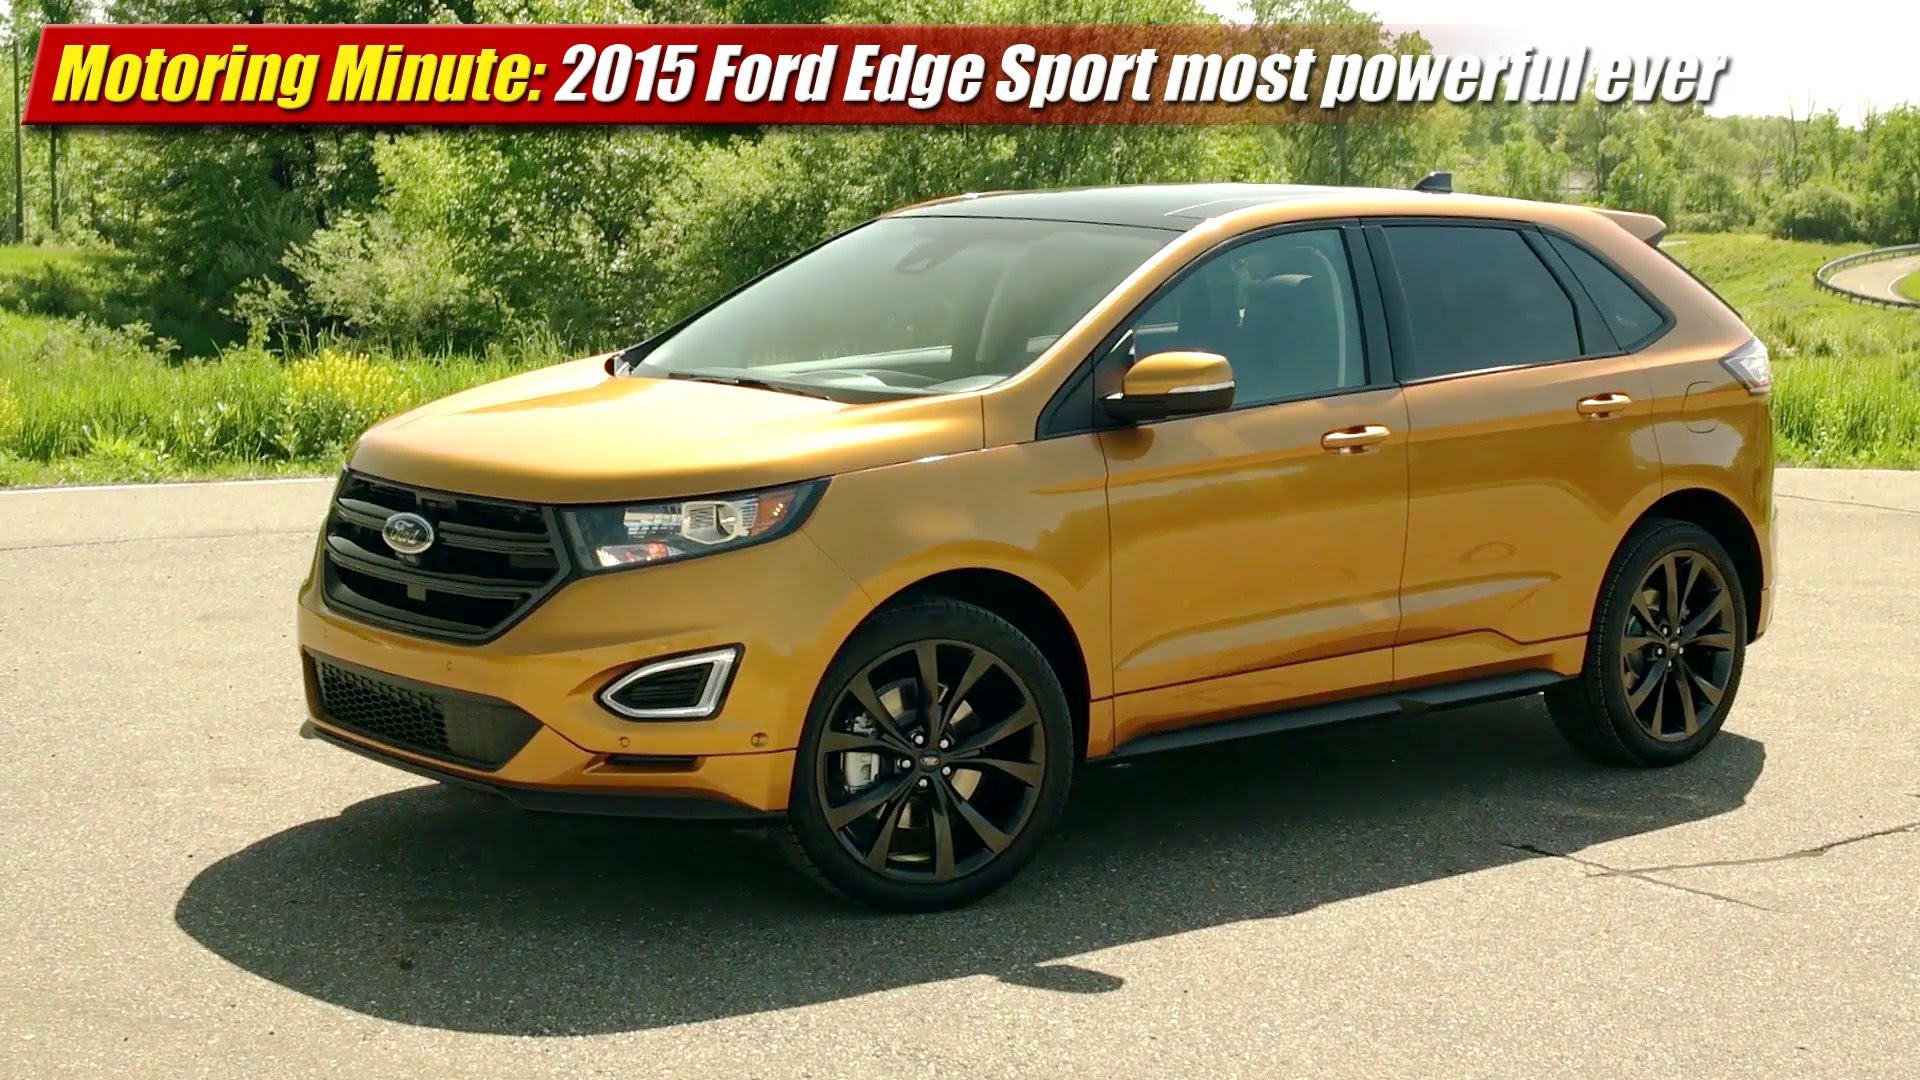 Motoring Minute: 2015 Ford Edge most powerful ever - TestDriven.TV